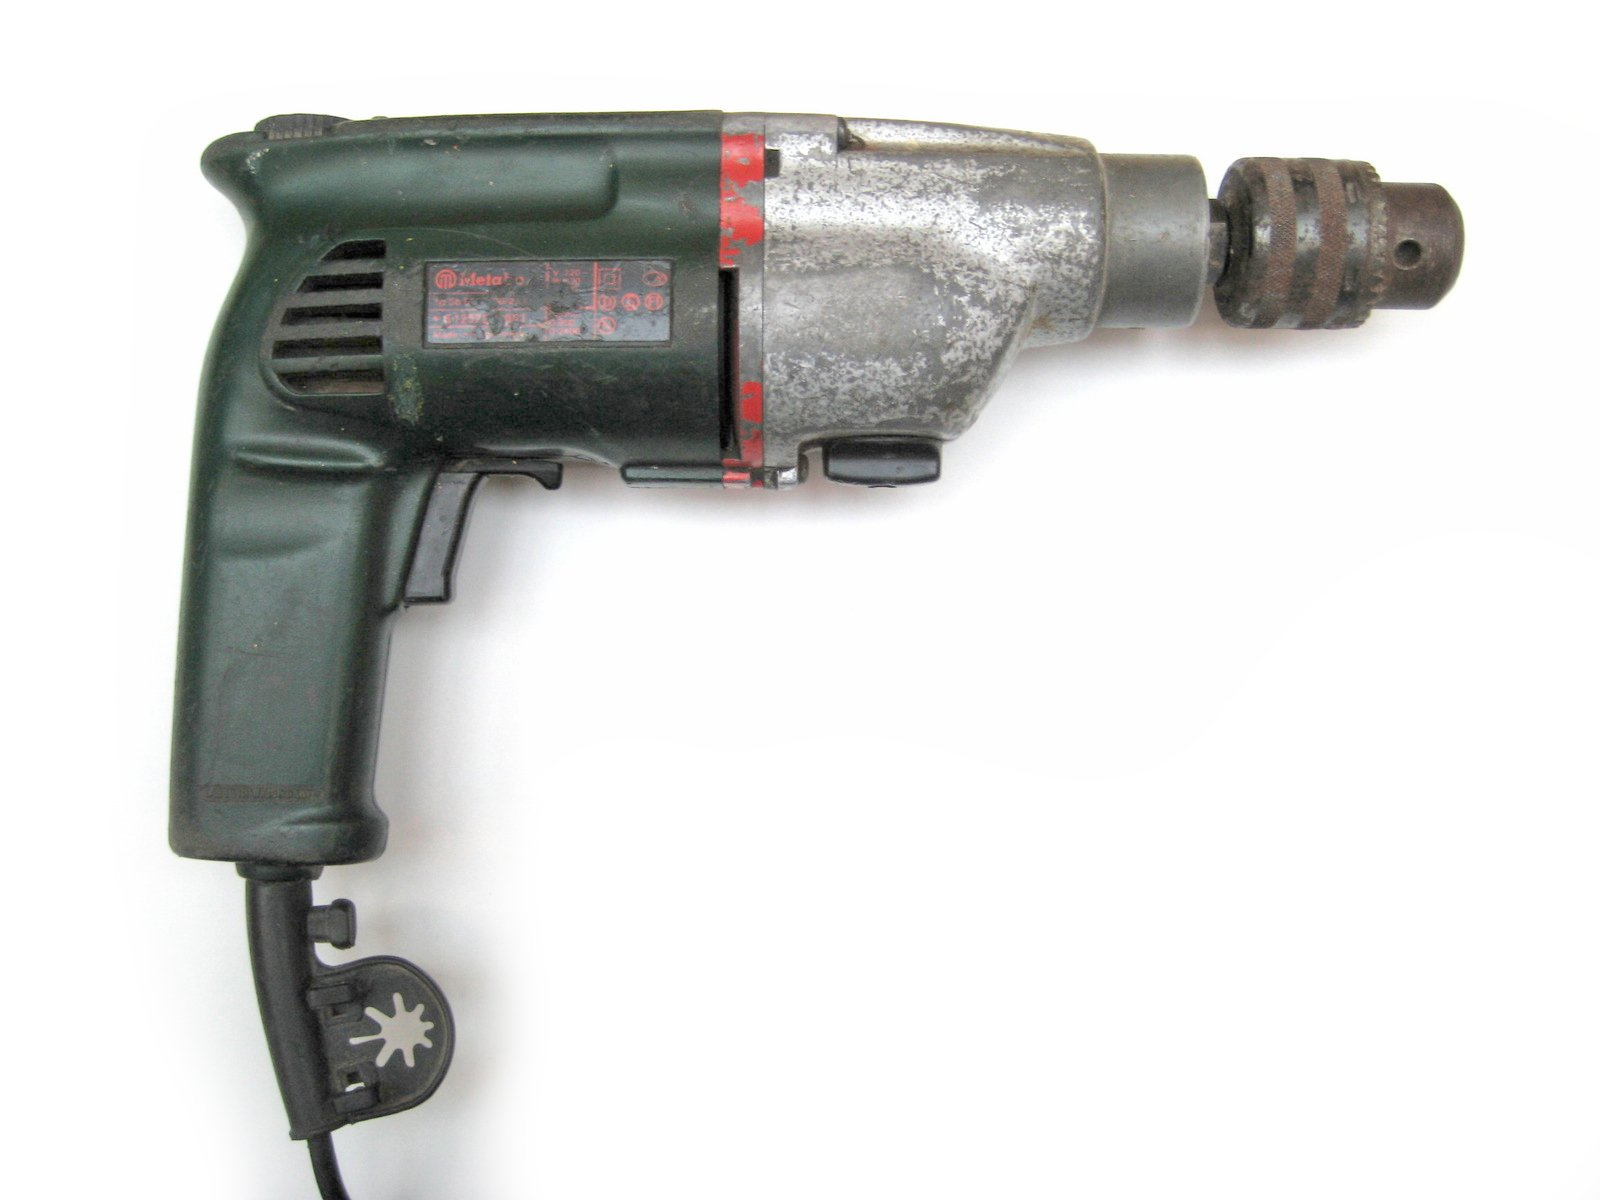 Power Drill Chuck Replacement - iFixit Repair Guide